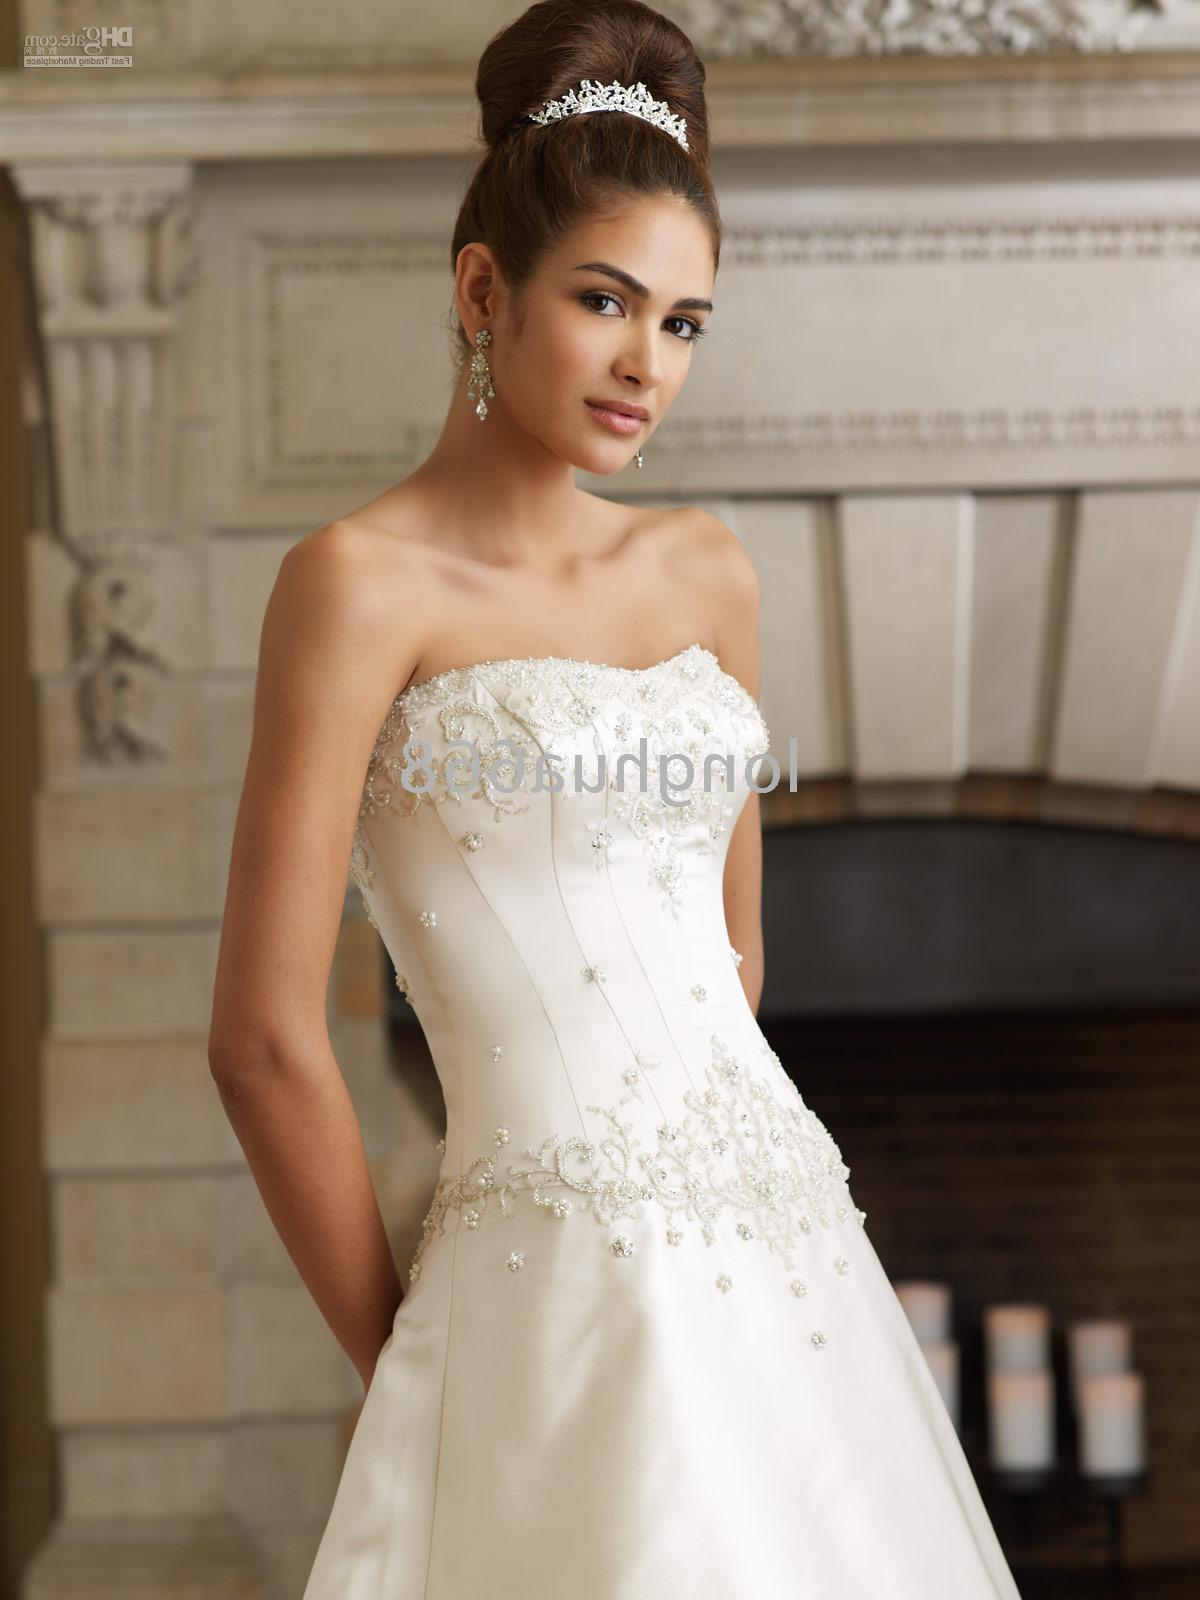 Custom-made Wedding gown evening dress  bridesmaid dress